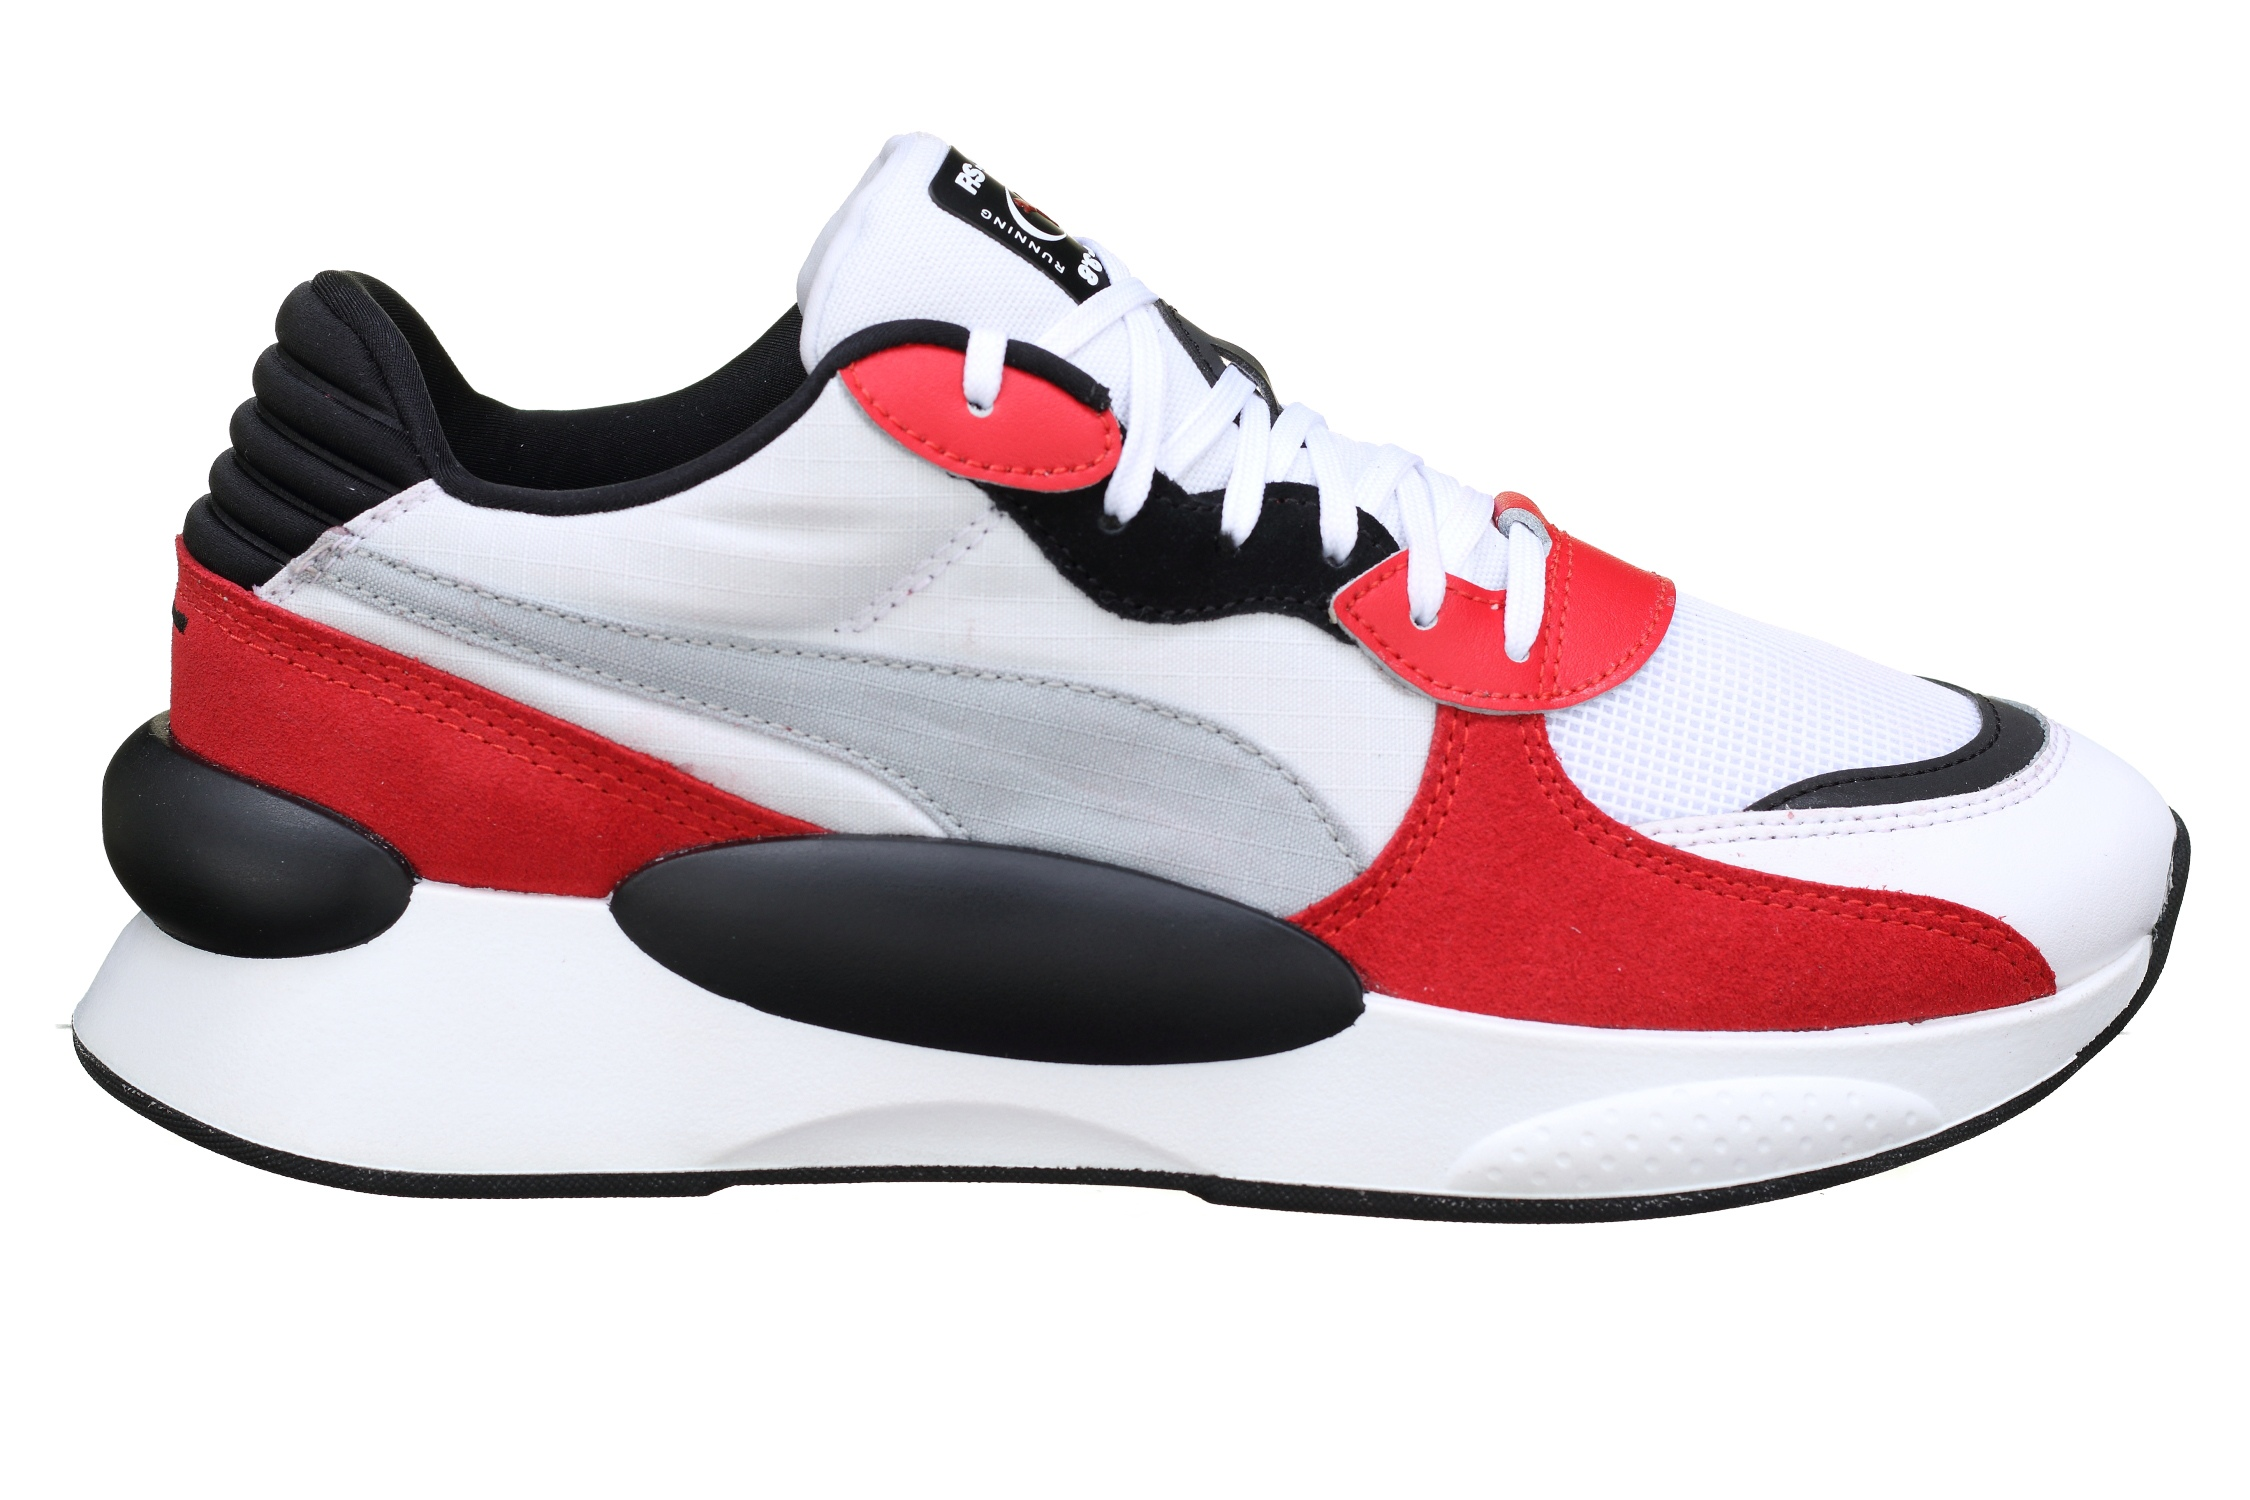 http://www.leadermode.com/176060/puma-rs-98-space-370230-01-white-red.jpg